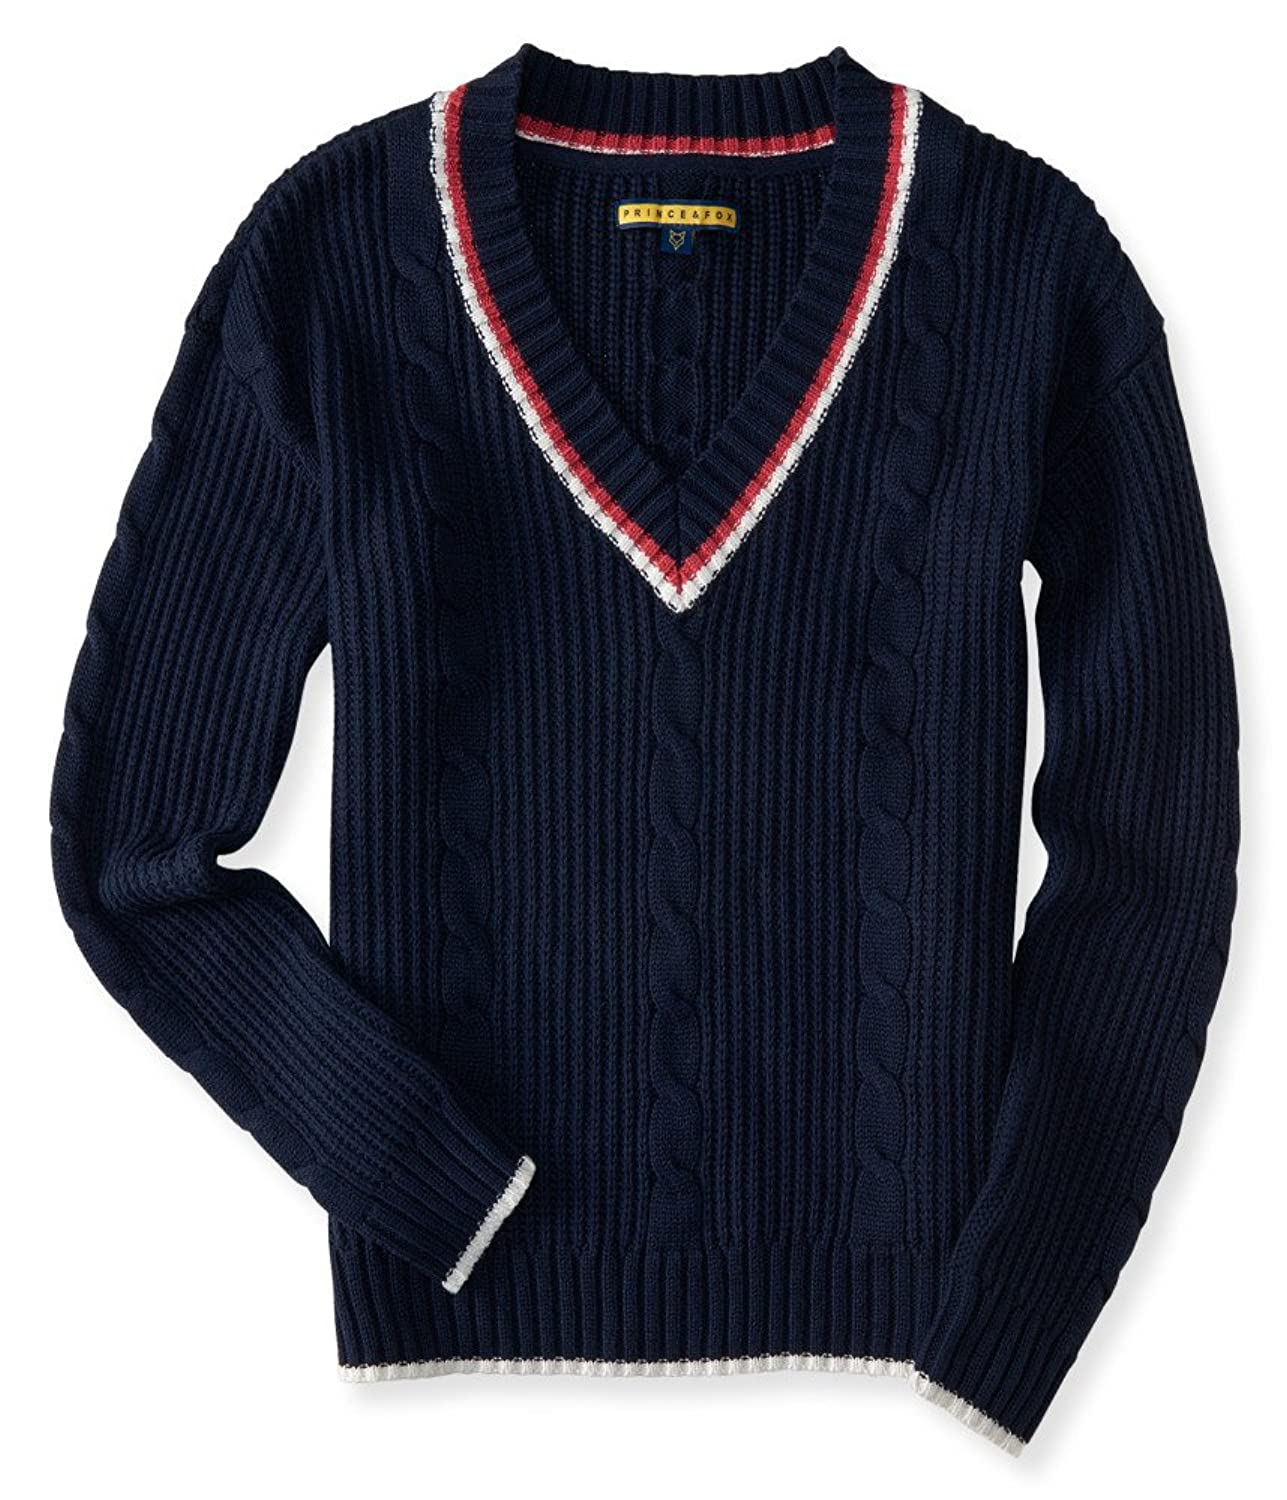 Vintage Sweaters – 1910s, 1920s, 1930s Pictures Aeropostale Womens Prince & Fox Varsity V-Neck Sweater $14.99 AT vintagedancer.com